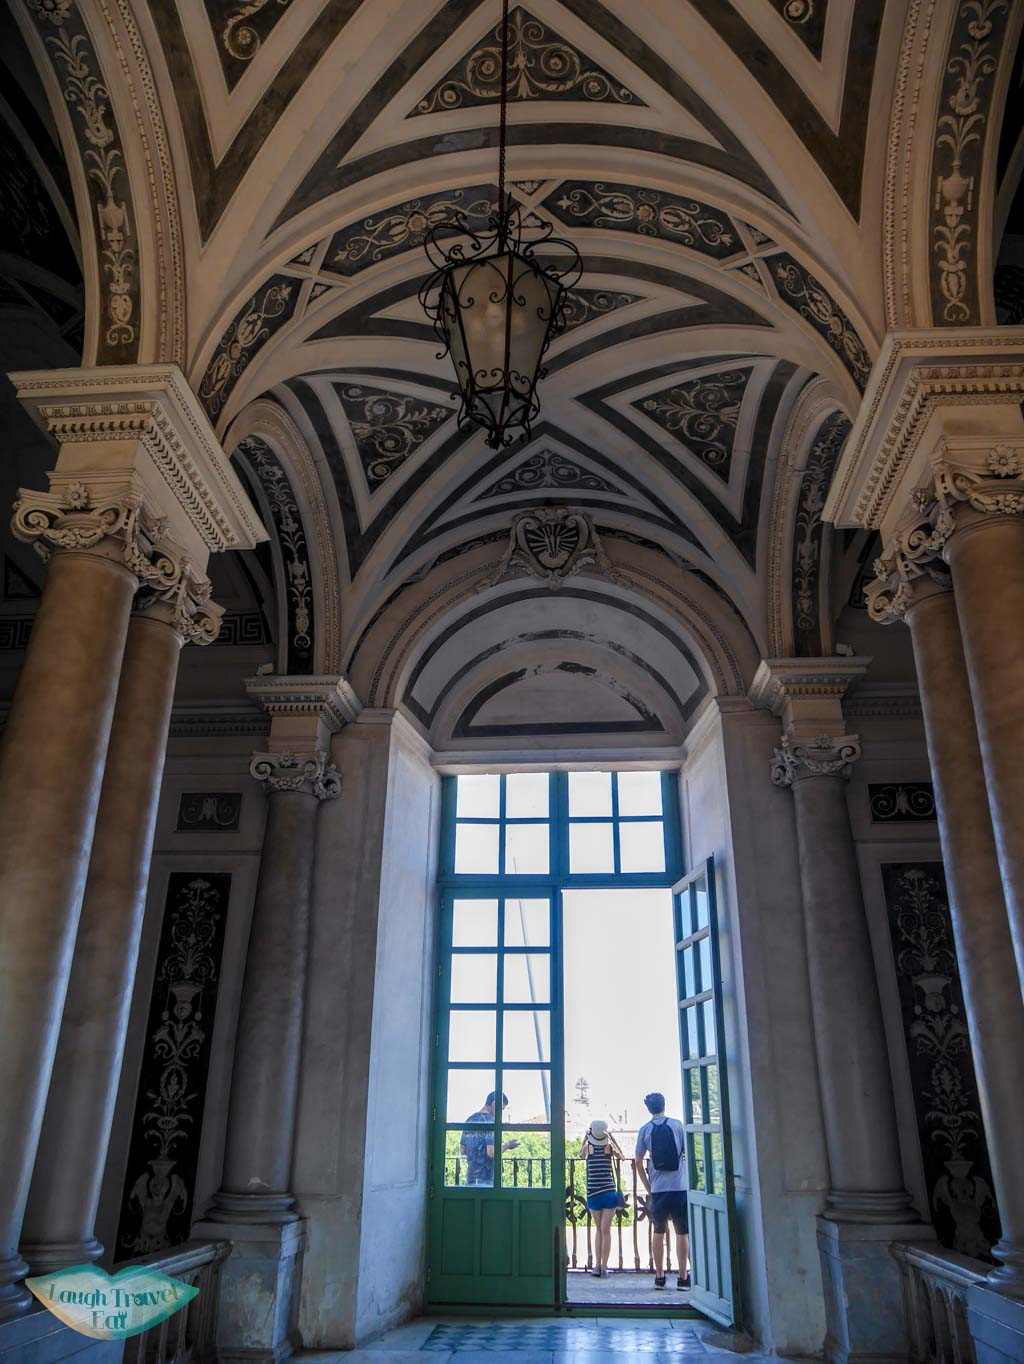 Beautiful ceiling and interior decoration of the Benedictine Monastery | Laugh Travel Eat